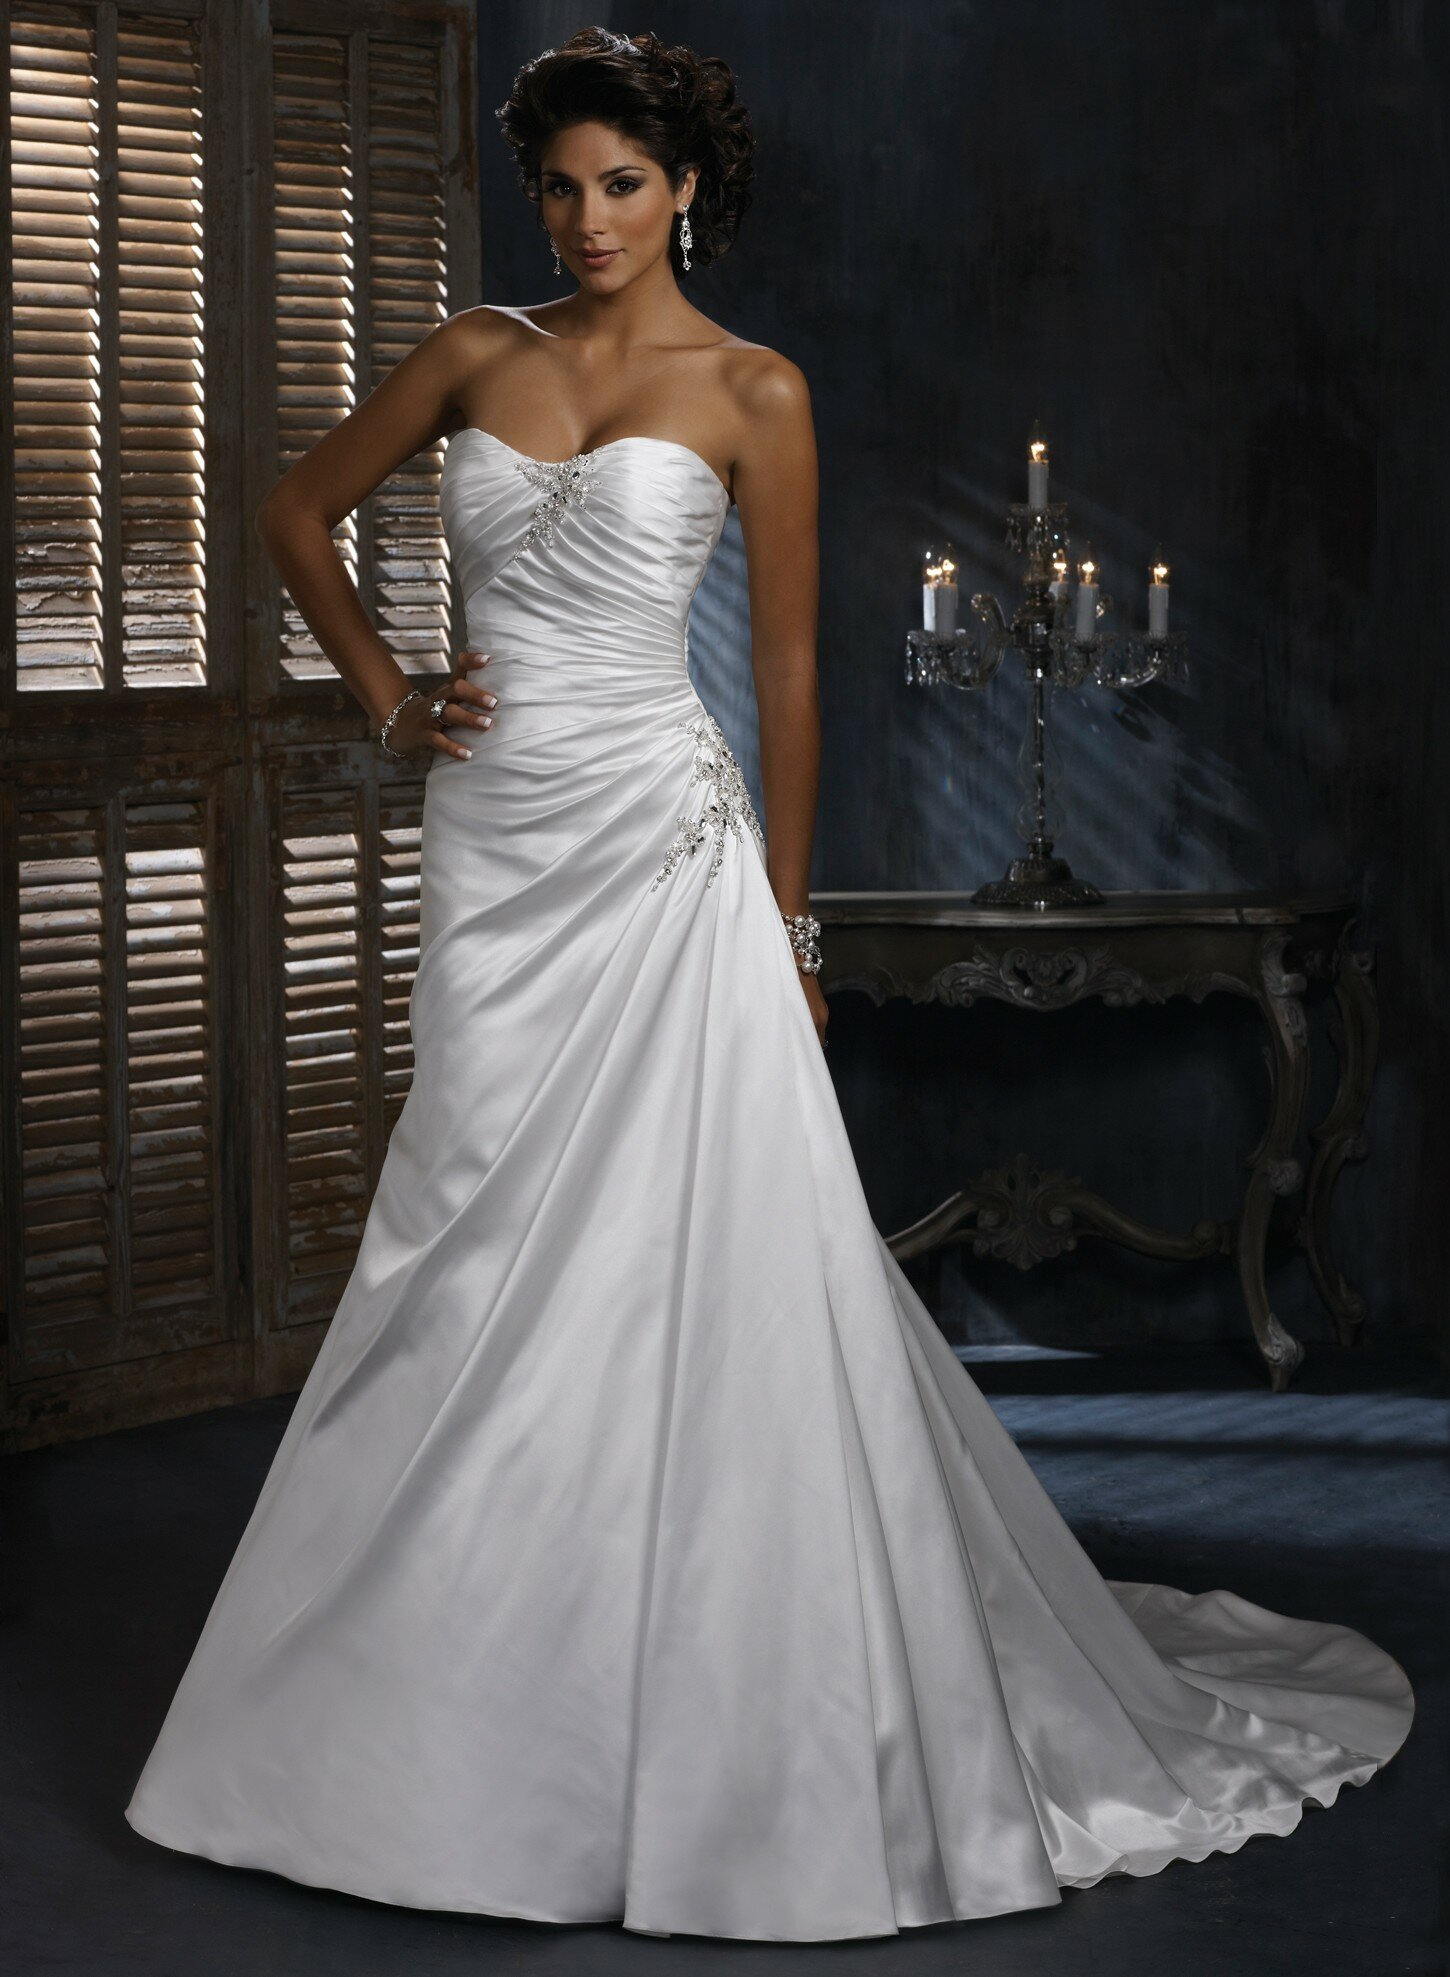 A line satin wedding dresses pictures ideas guide to for When to buy wedding dress